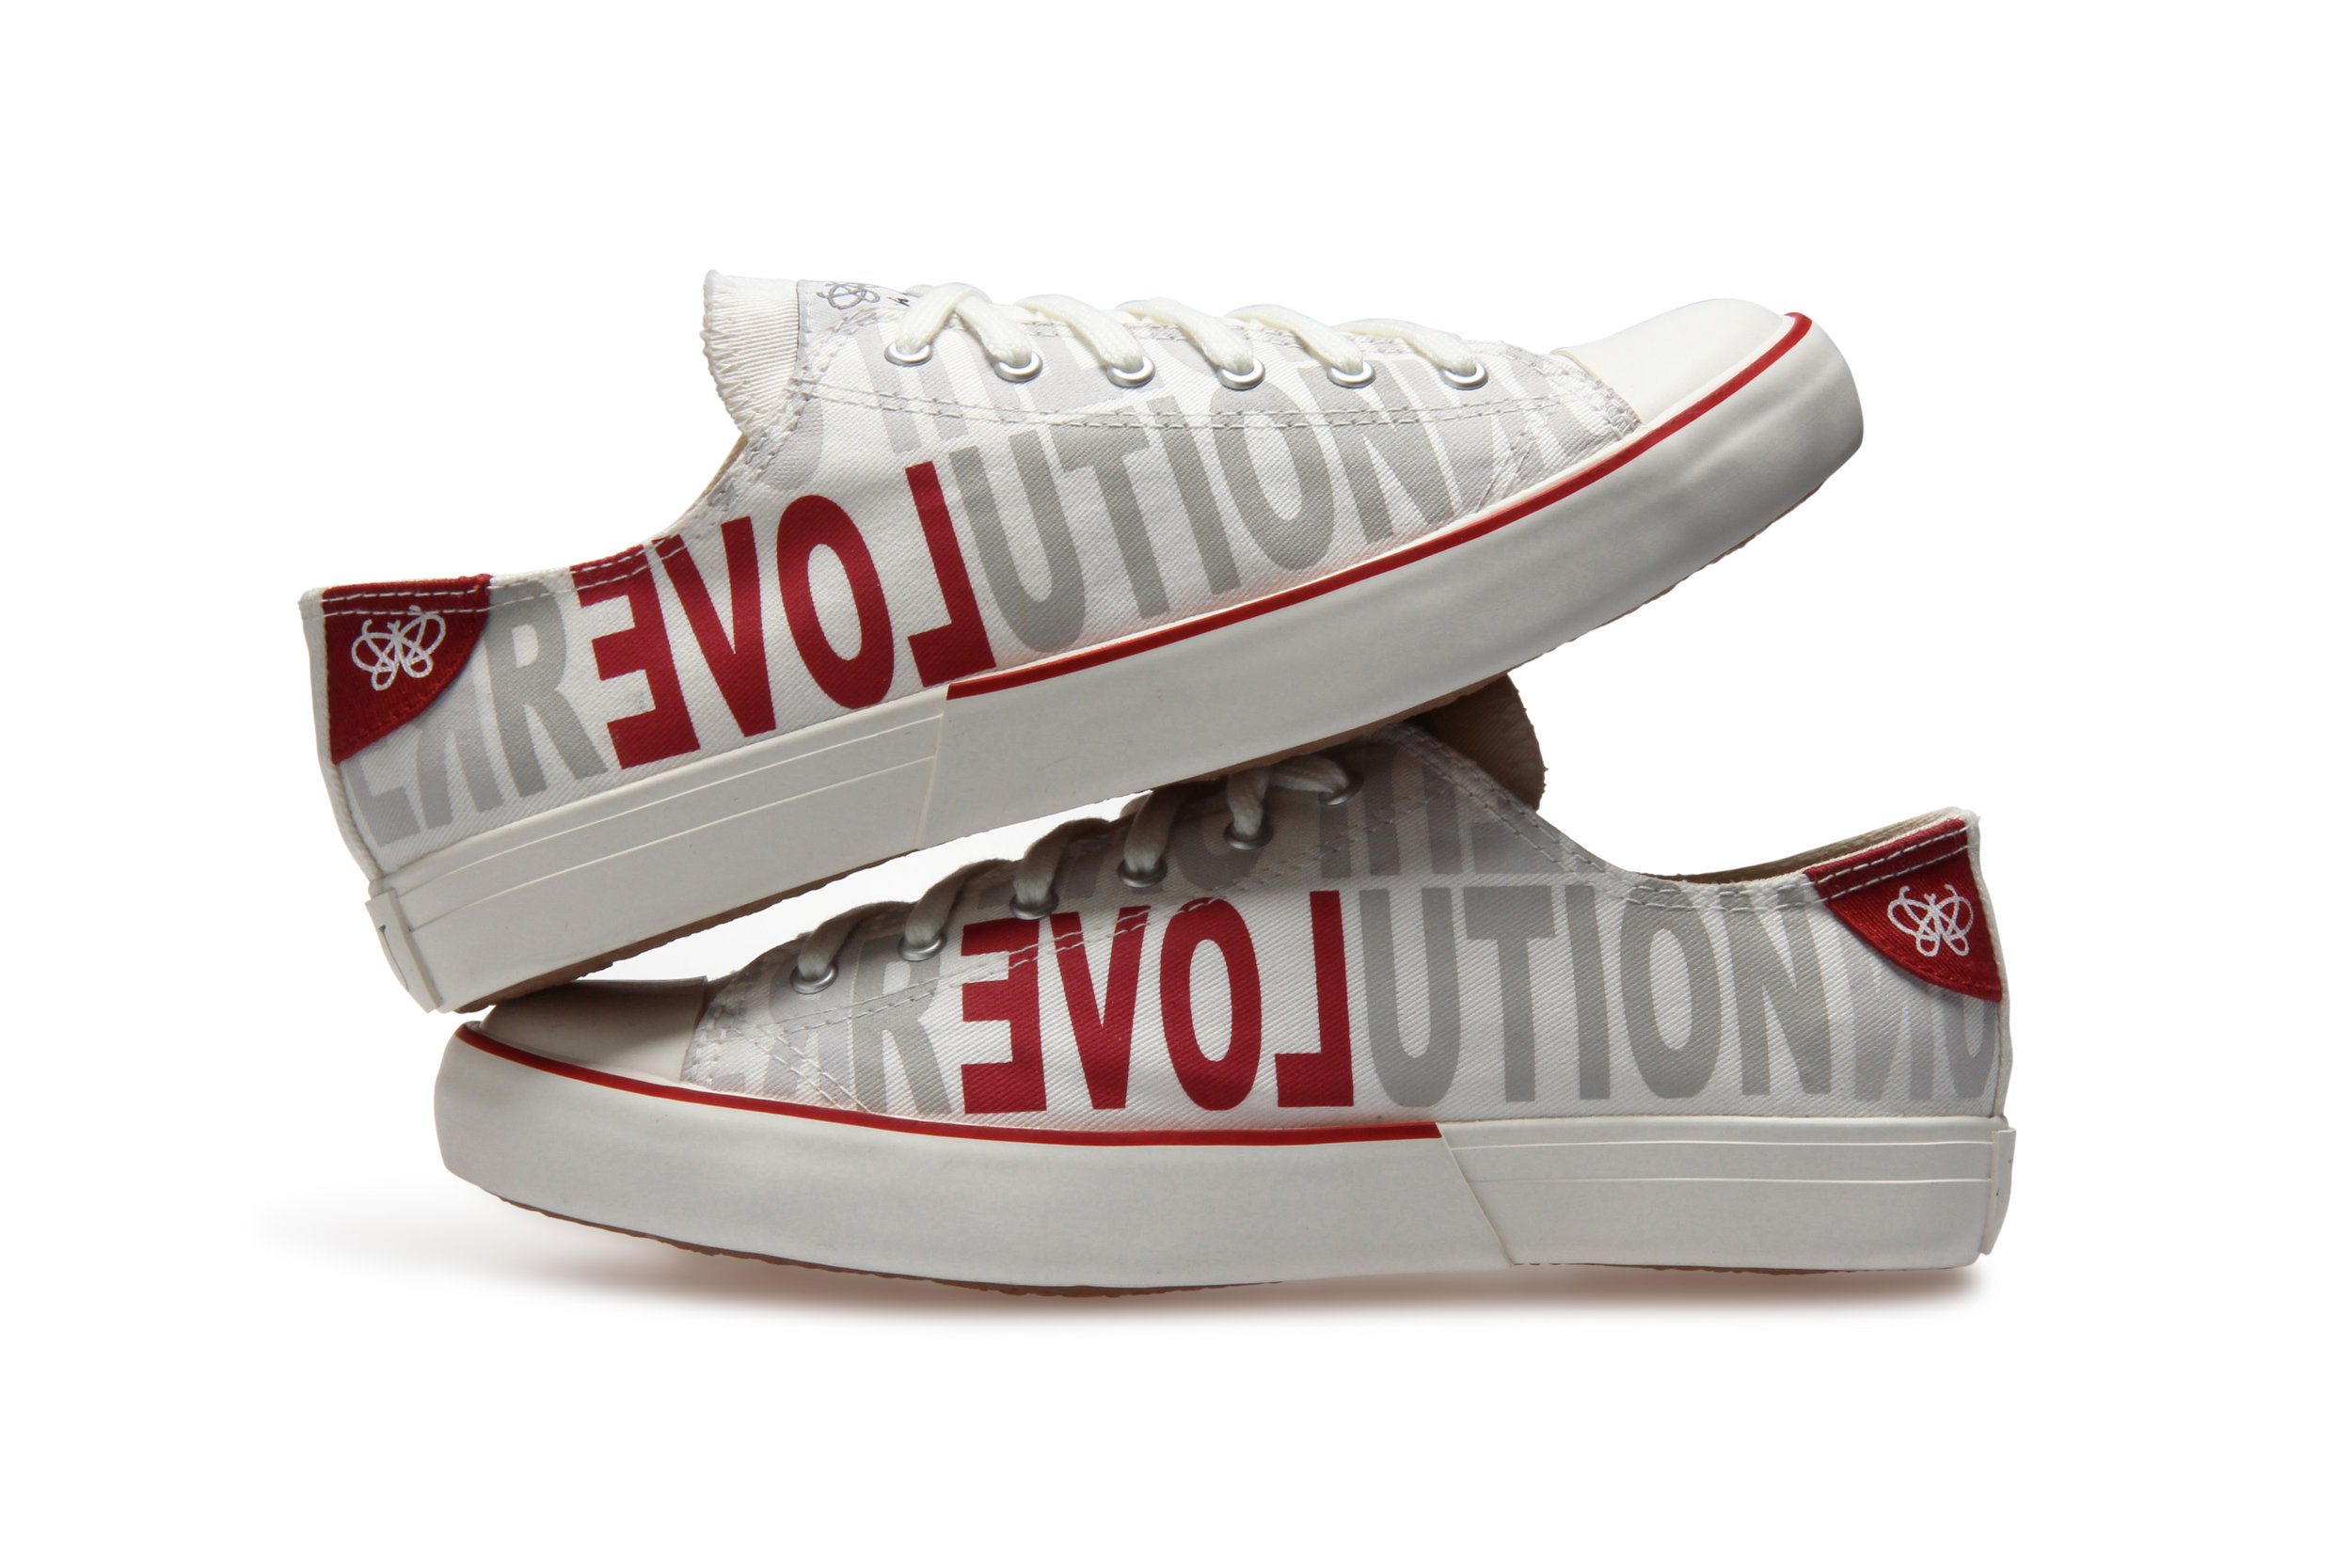 Revolution_Pair_Side_clean.jpg [£59 unisex].jpg